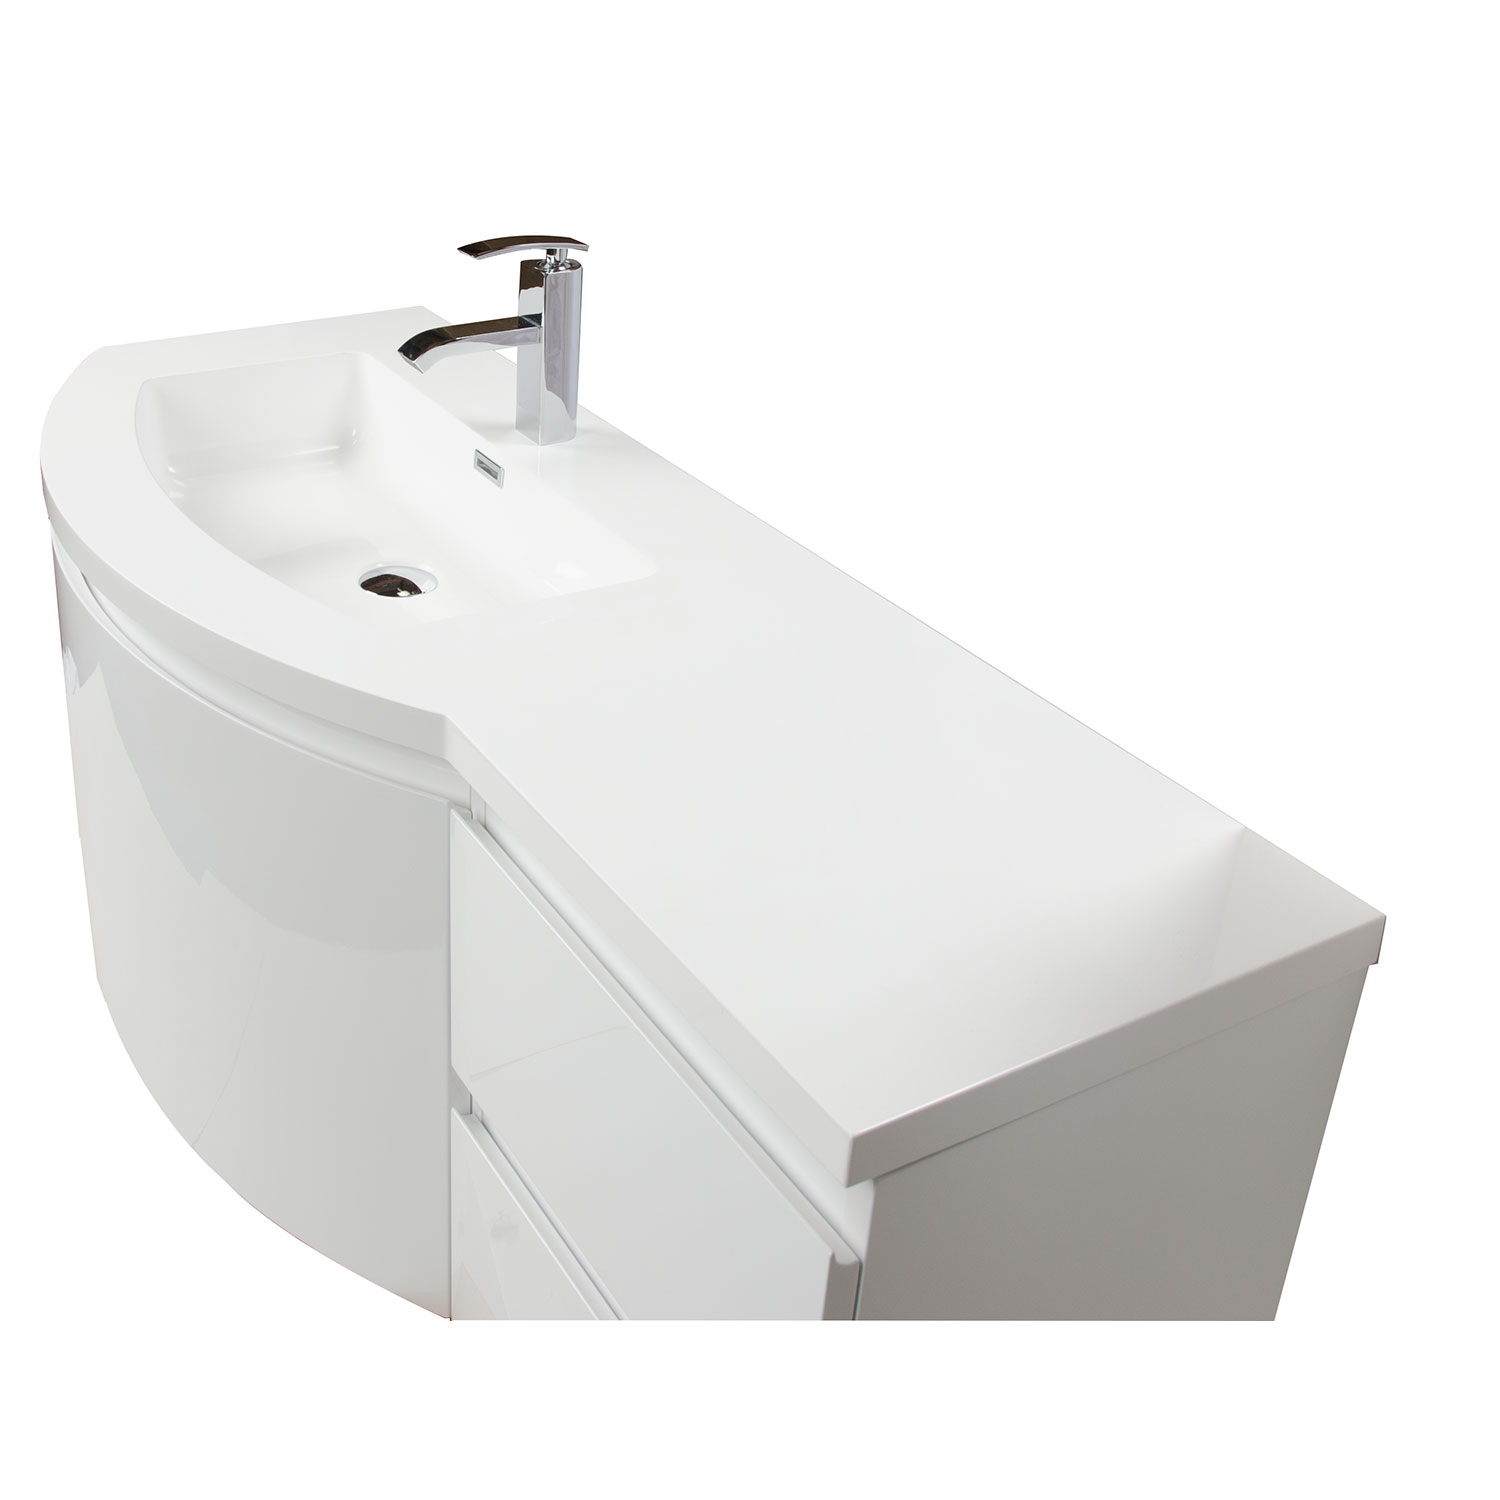 36 Vanity With Sink Fresh 48 Inch Left Fset Bathroom Top